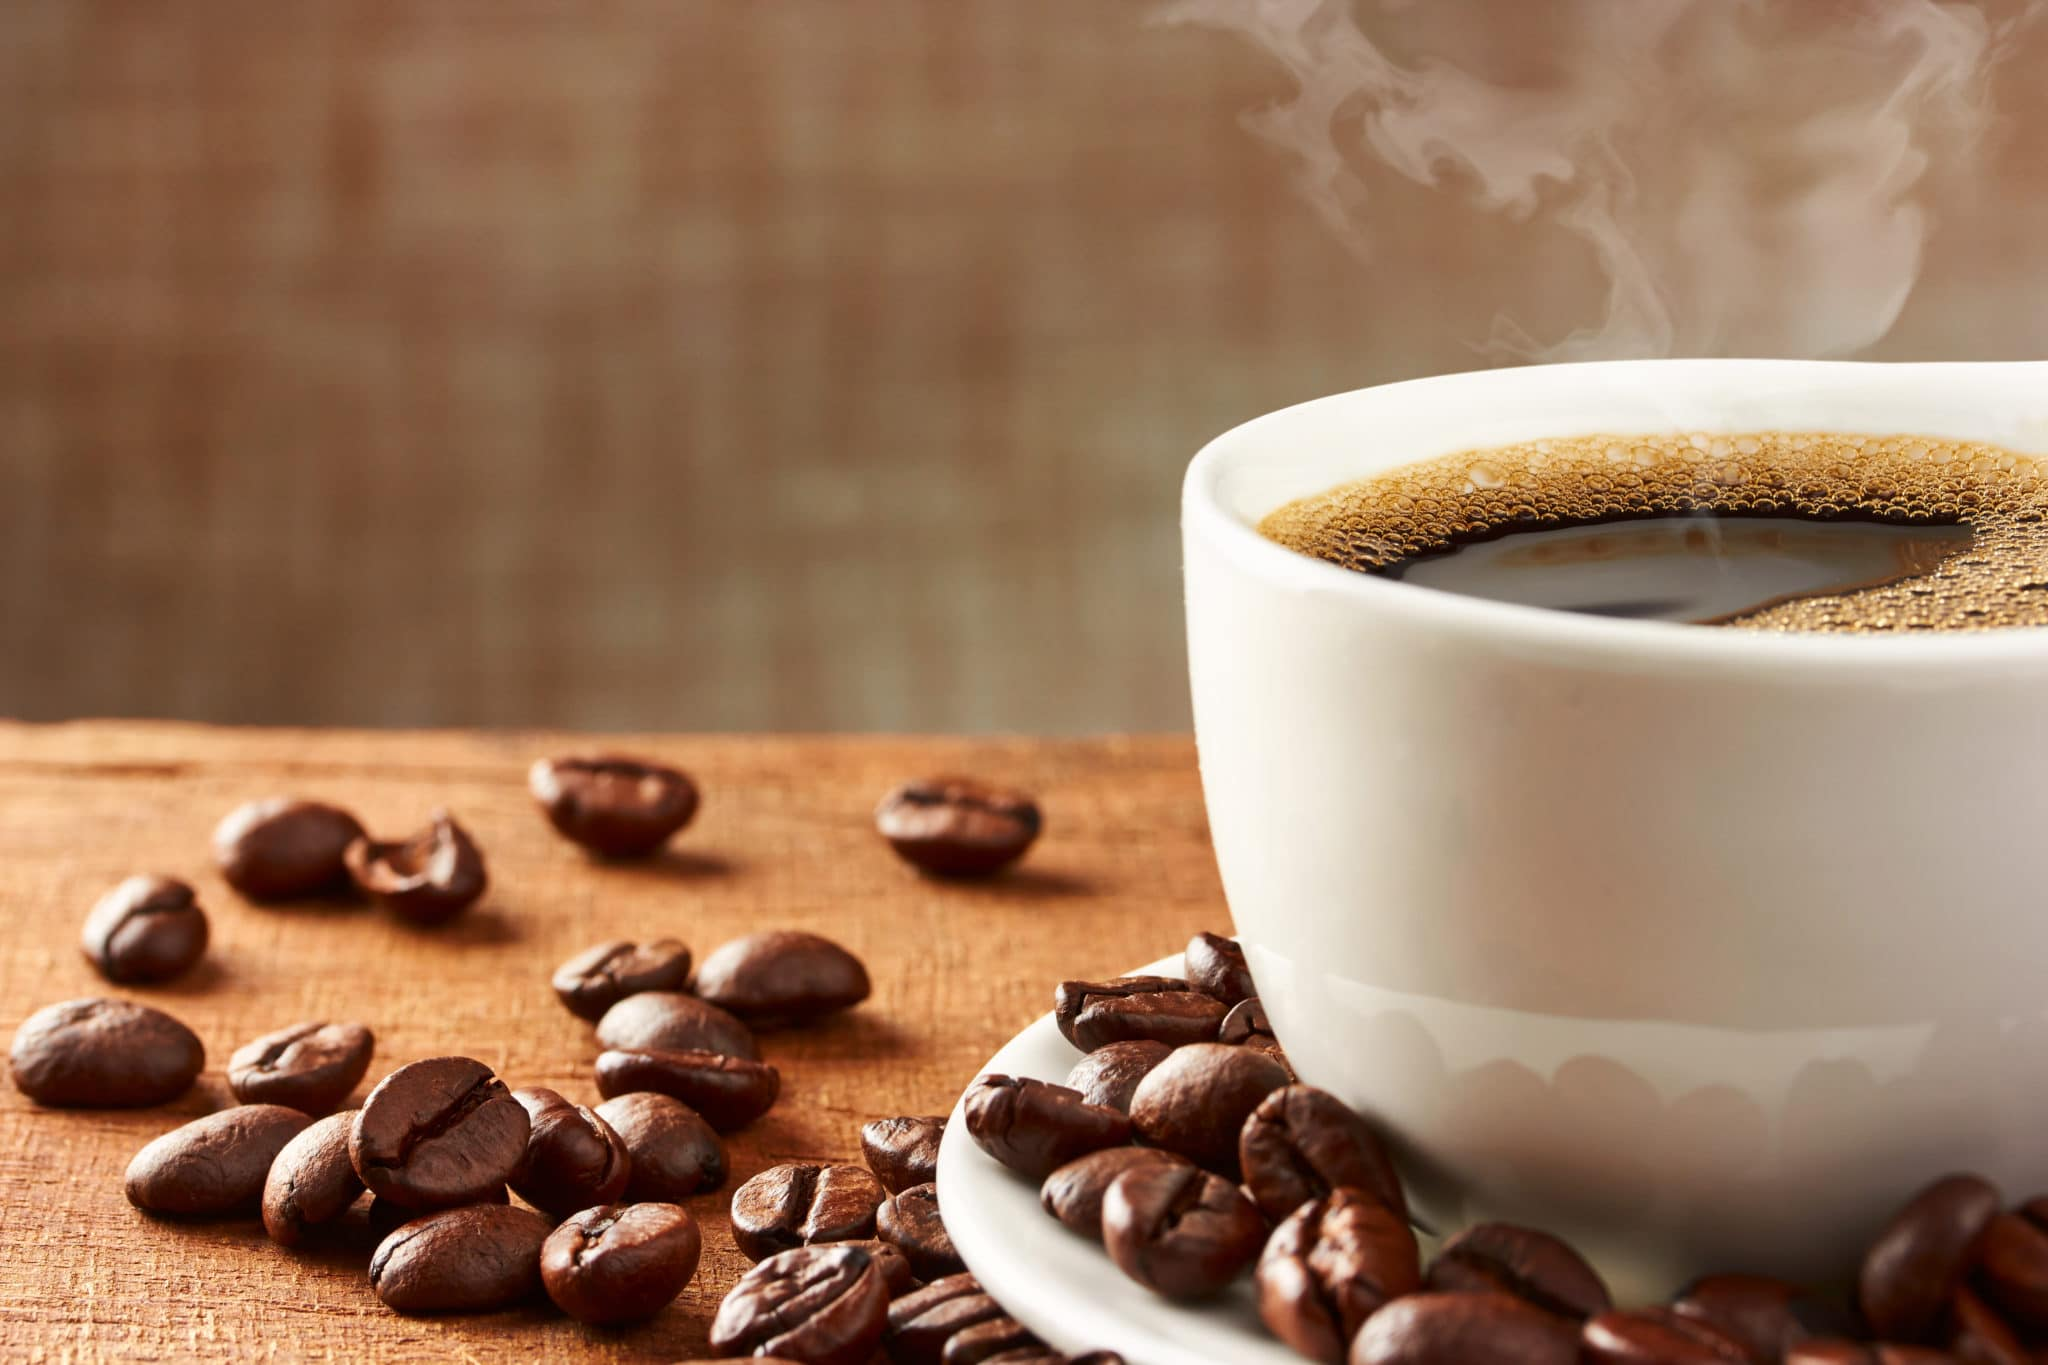 coffee and chronic pain, Coffee and Chronic Pain: Does It Help or Hurt?